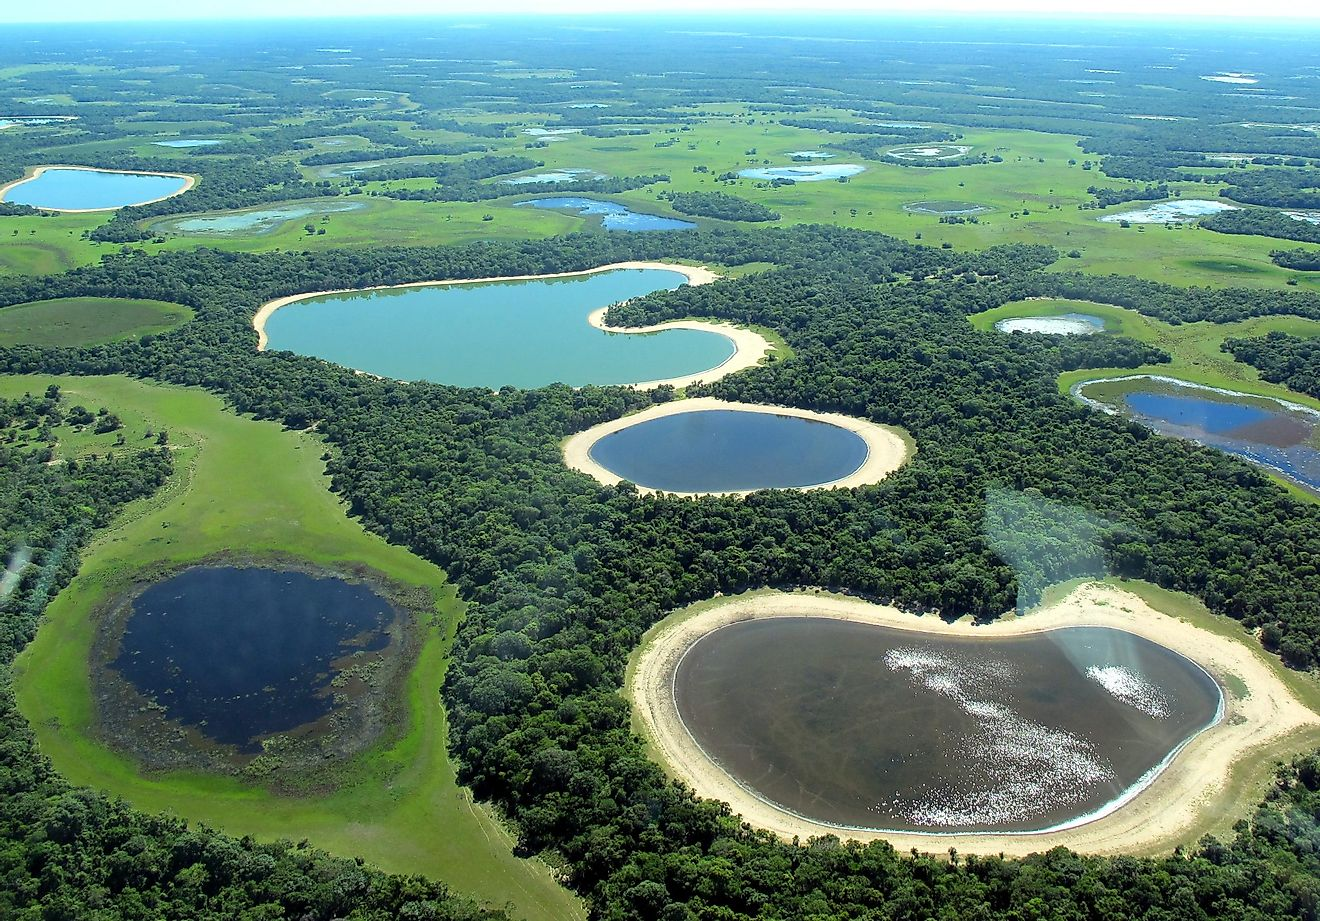 Lakes in the Pantanal region of Brazil, the country with the 6th highest number of lakes in the world. Image credit: Lucas Leuzinger/Shutterstock.com